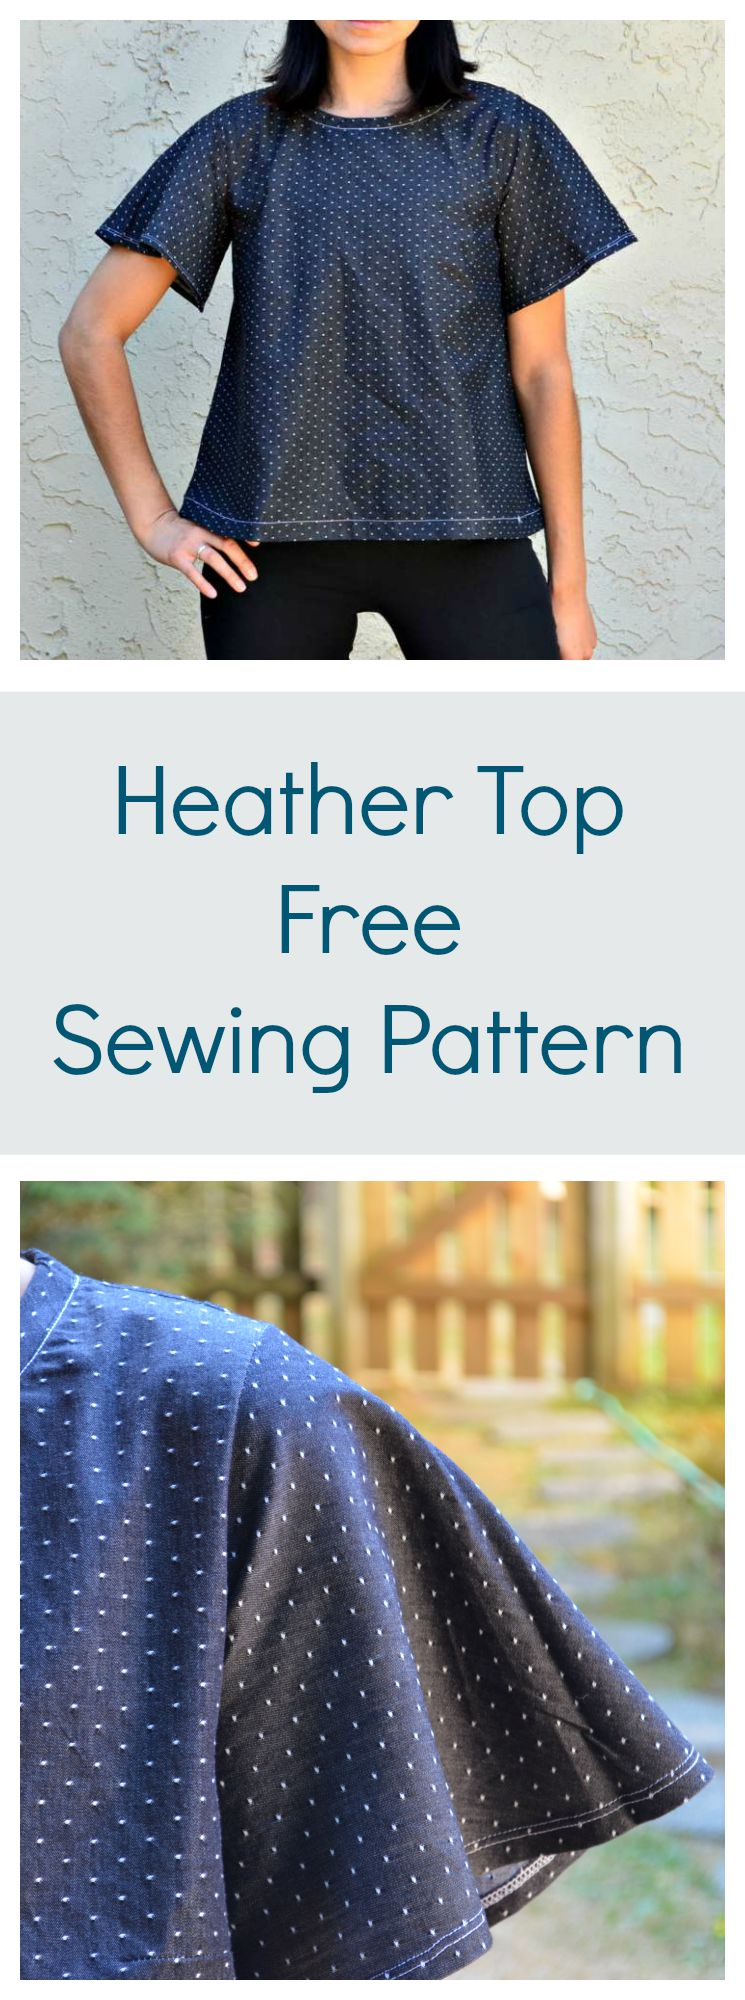 free top pattern, free sewing pattern, heather top pattern, flared top pattern